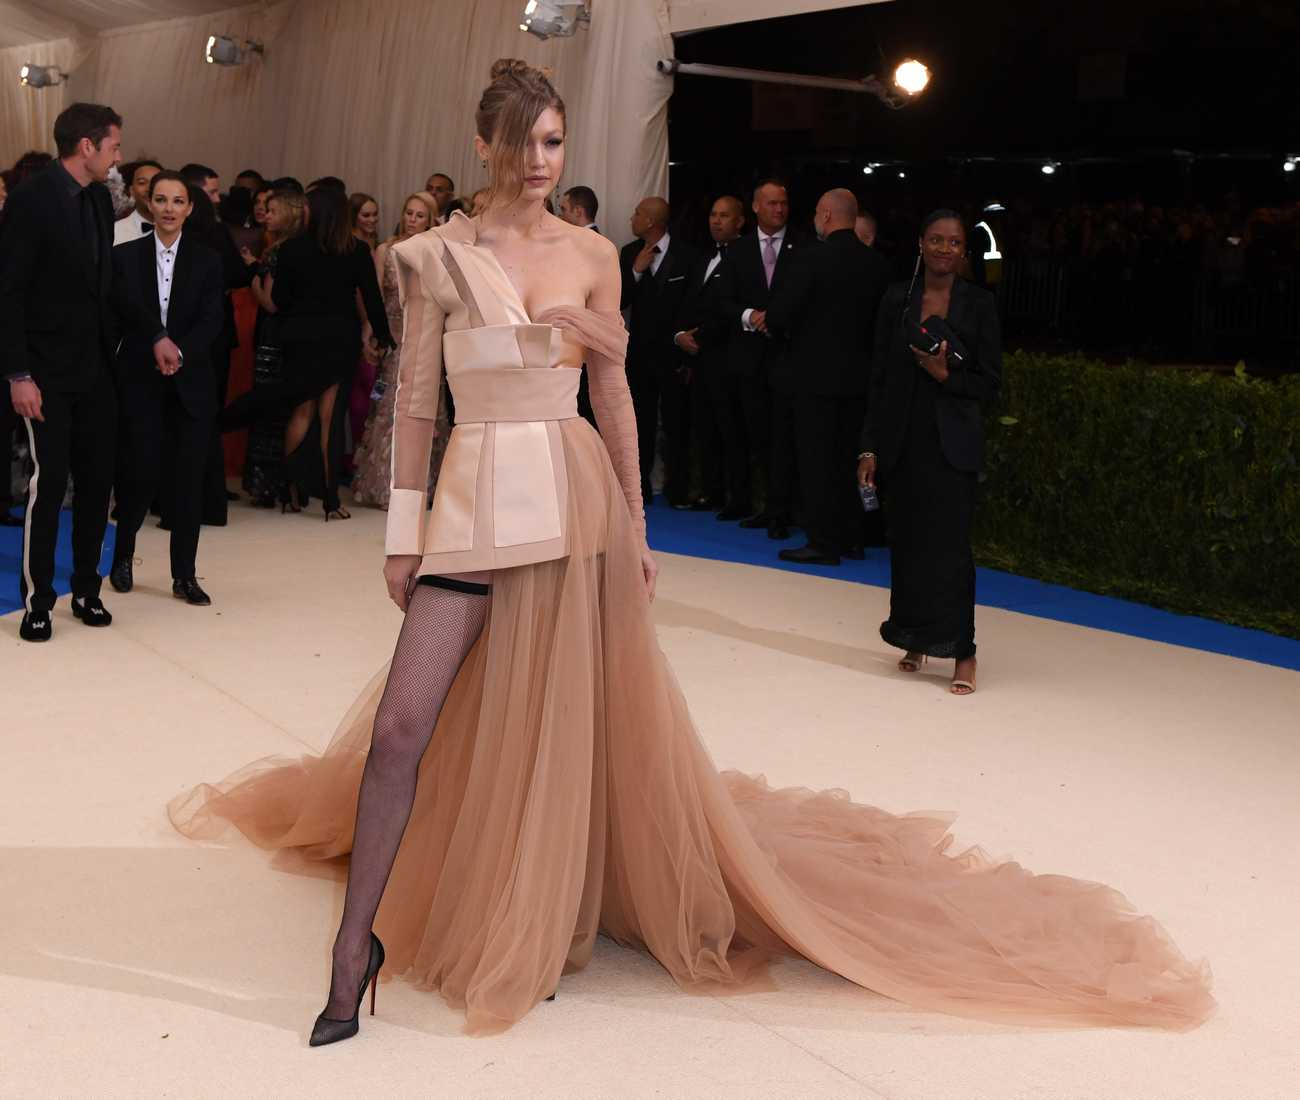 Gigi Hadid flashes her fishnets in princess-inspired Tommy Hilfiger gown as she goes to Met Gala without Zayn Malik